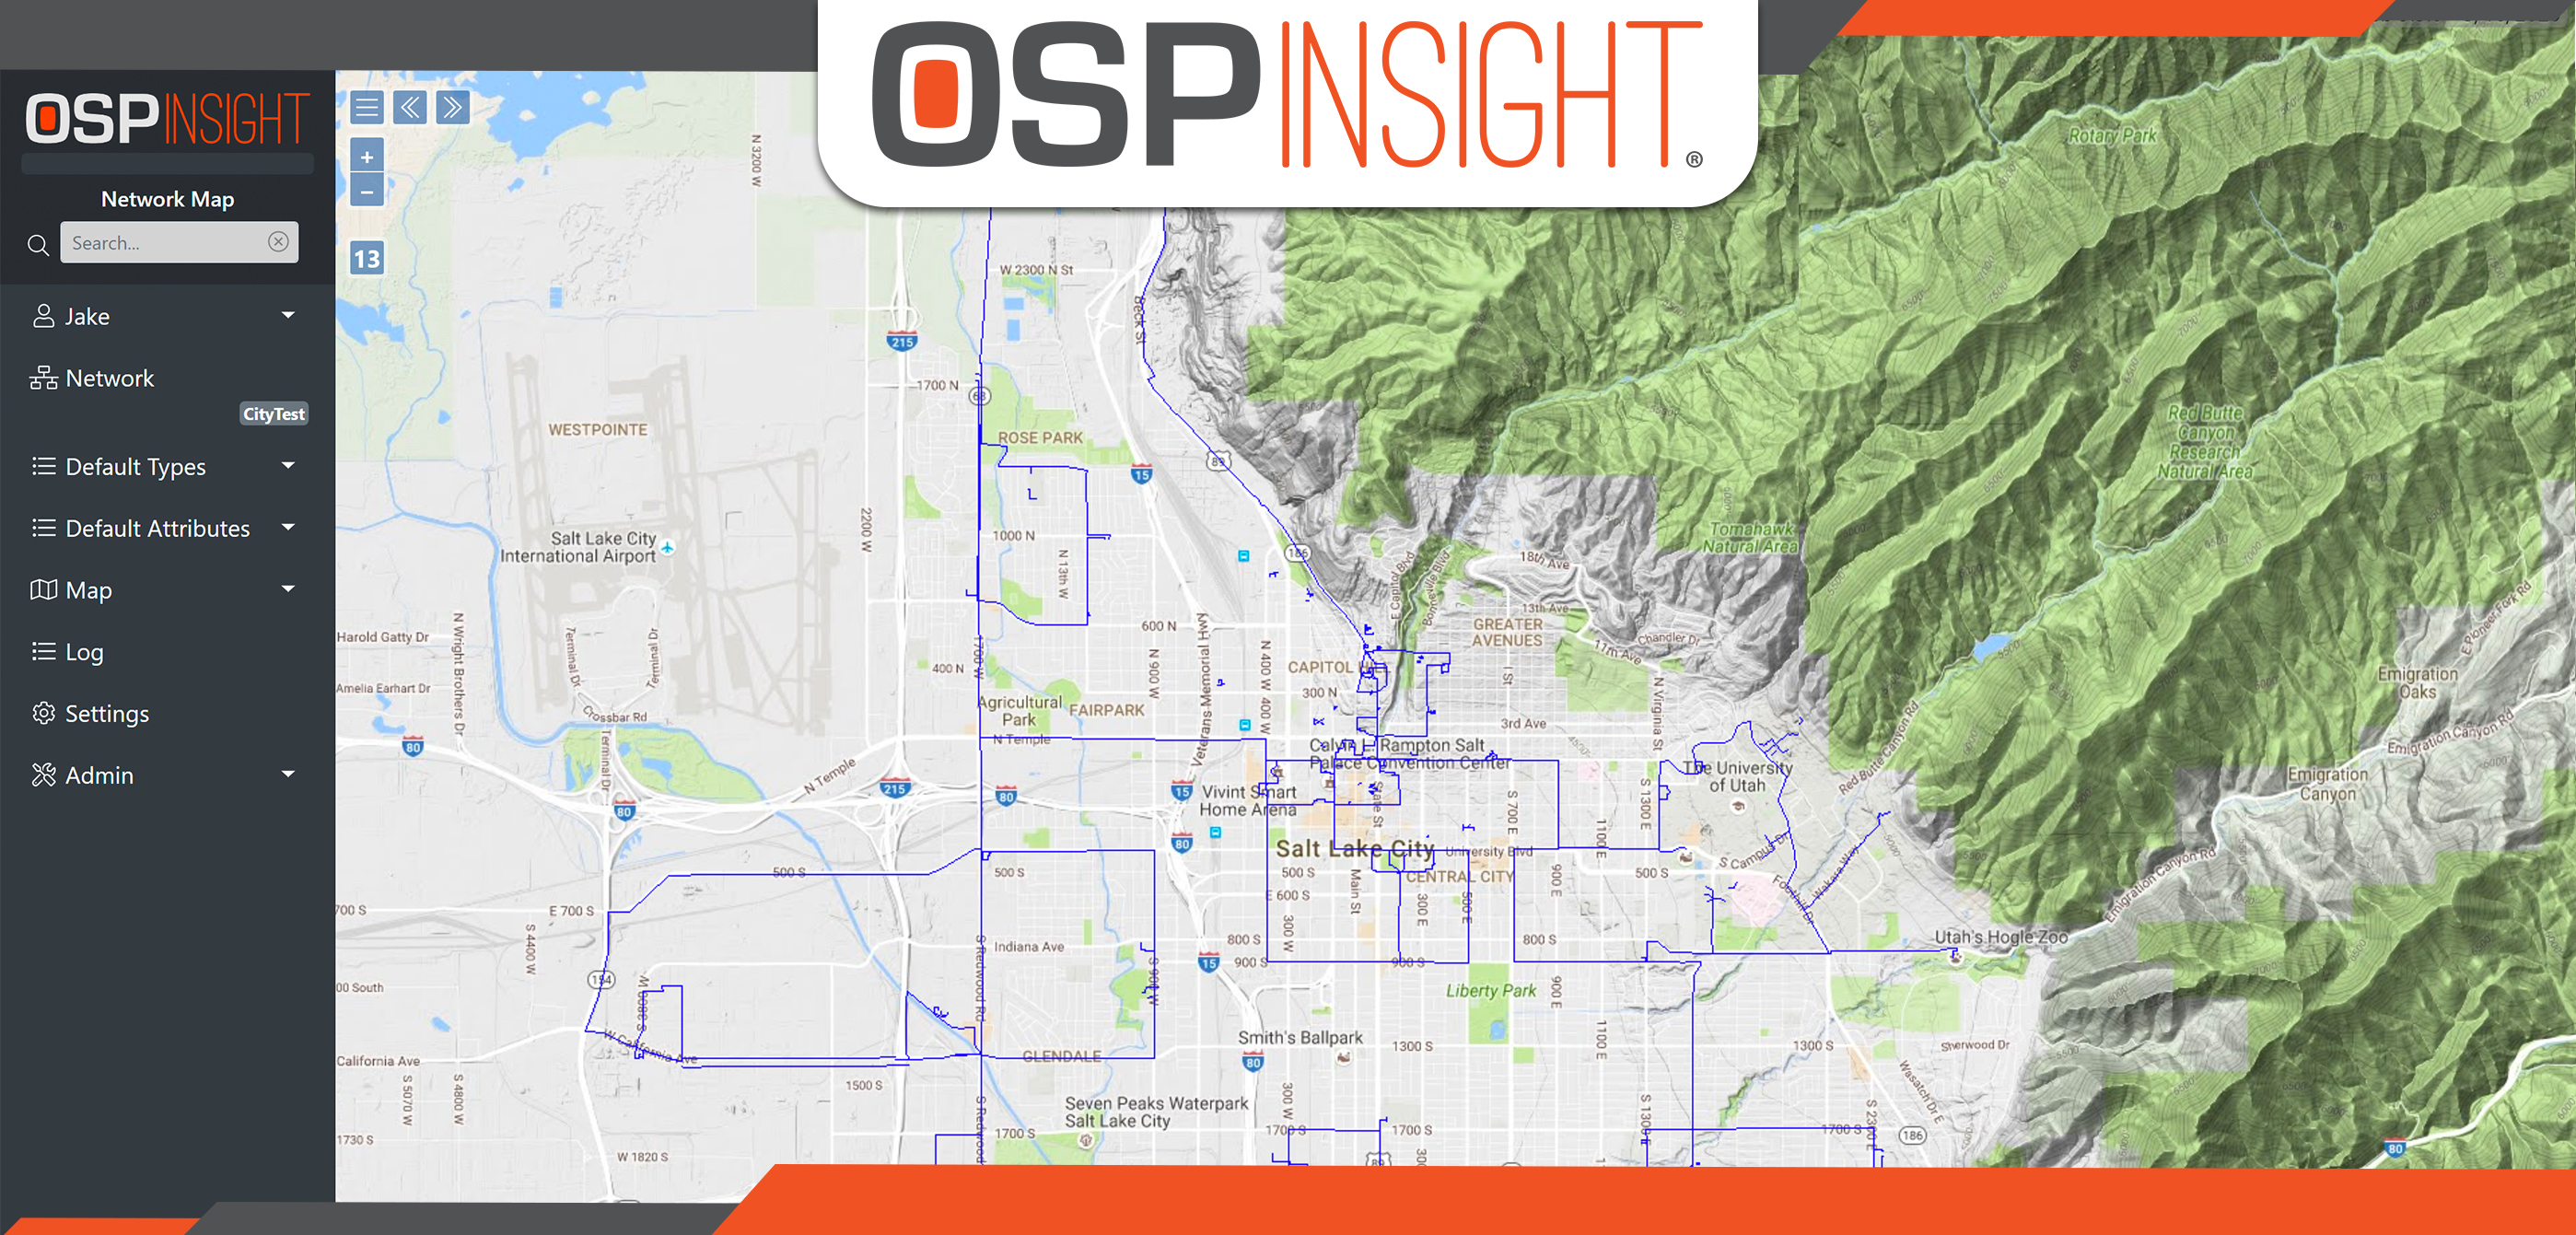 Press Release - OSPInsight Releases Version 9.3 (featured image)